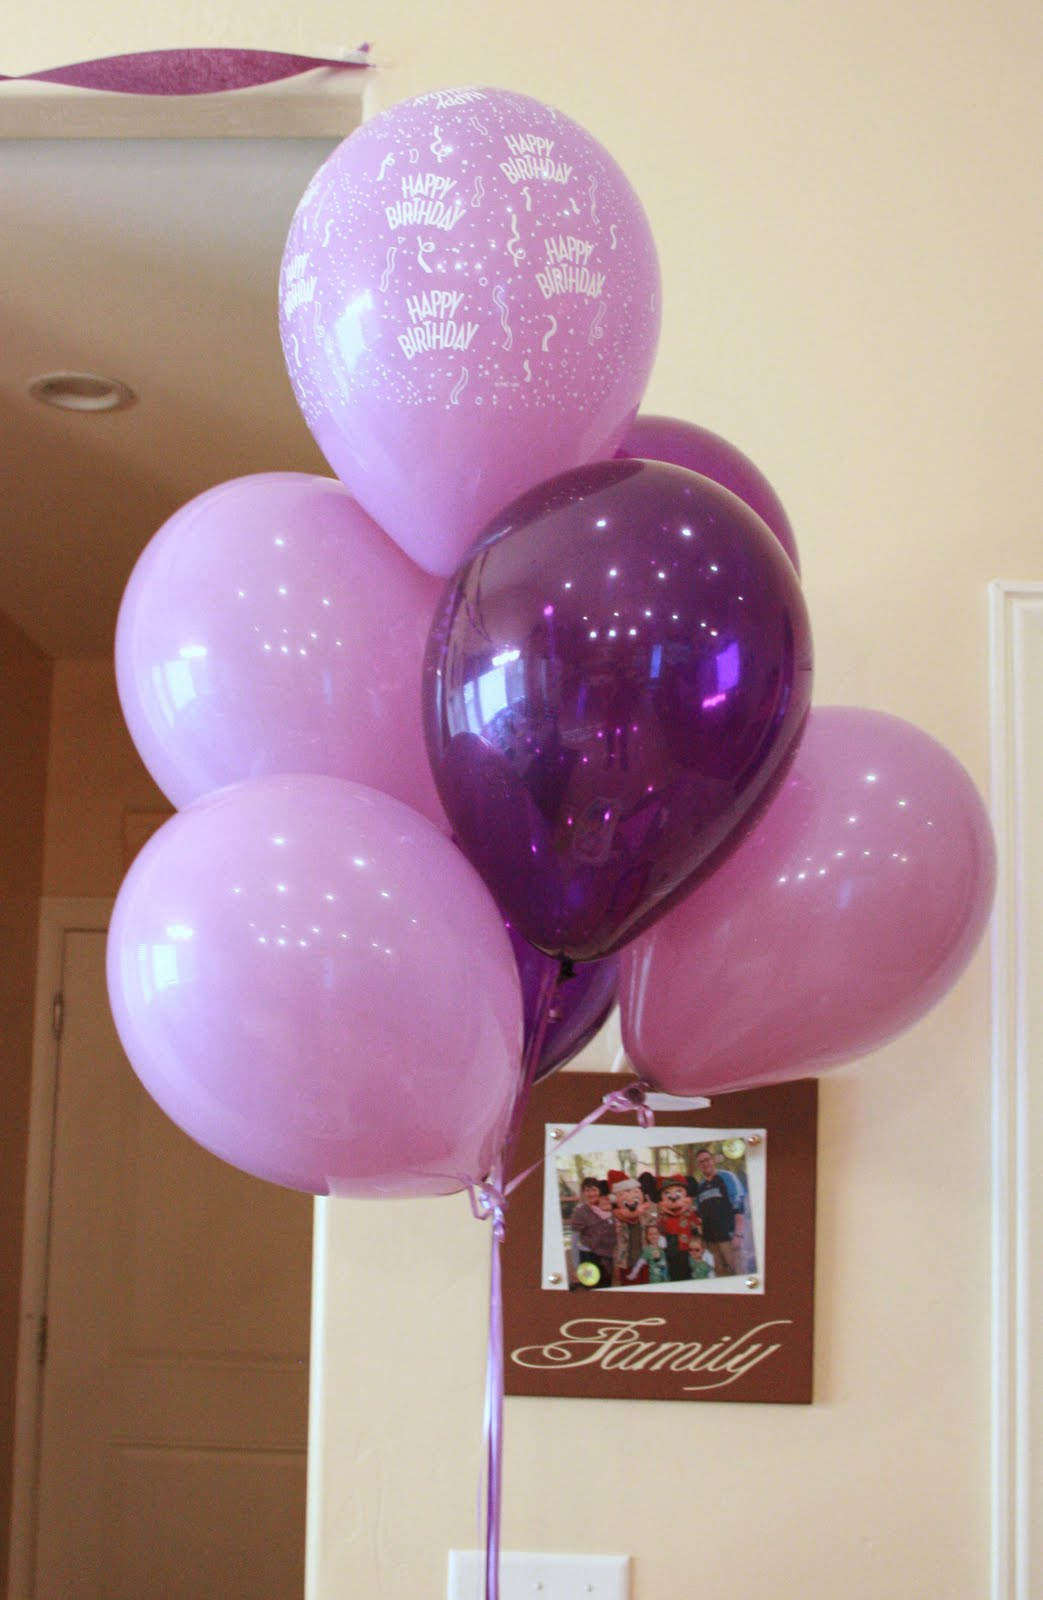 Outstanding Purple Balloon Decorations for Weddings 1043 x 1600 · 110 kB · jpeg